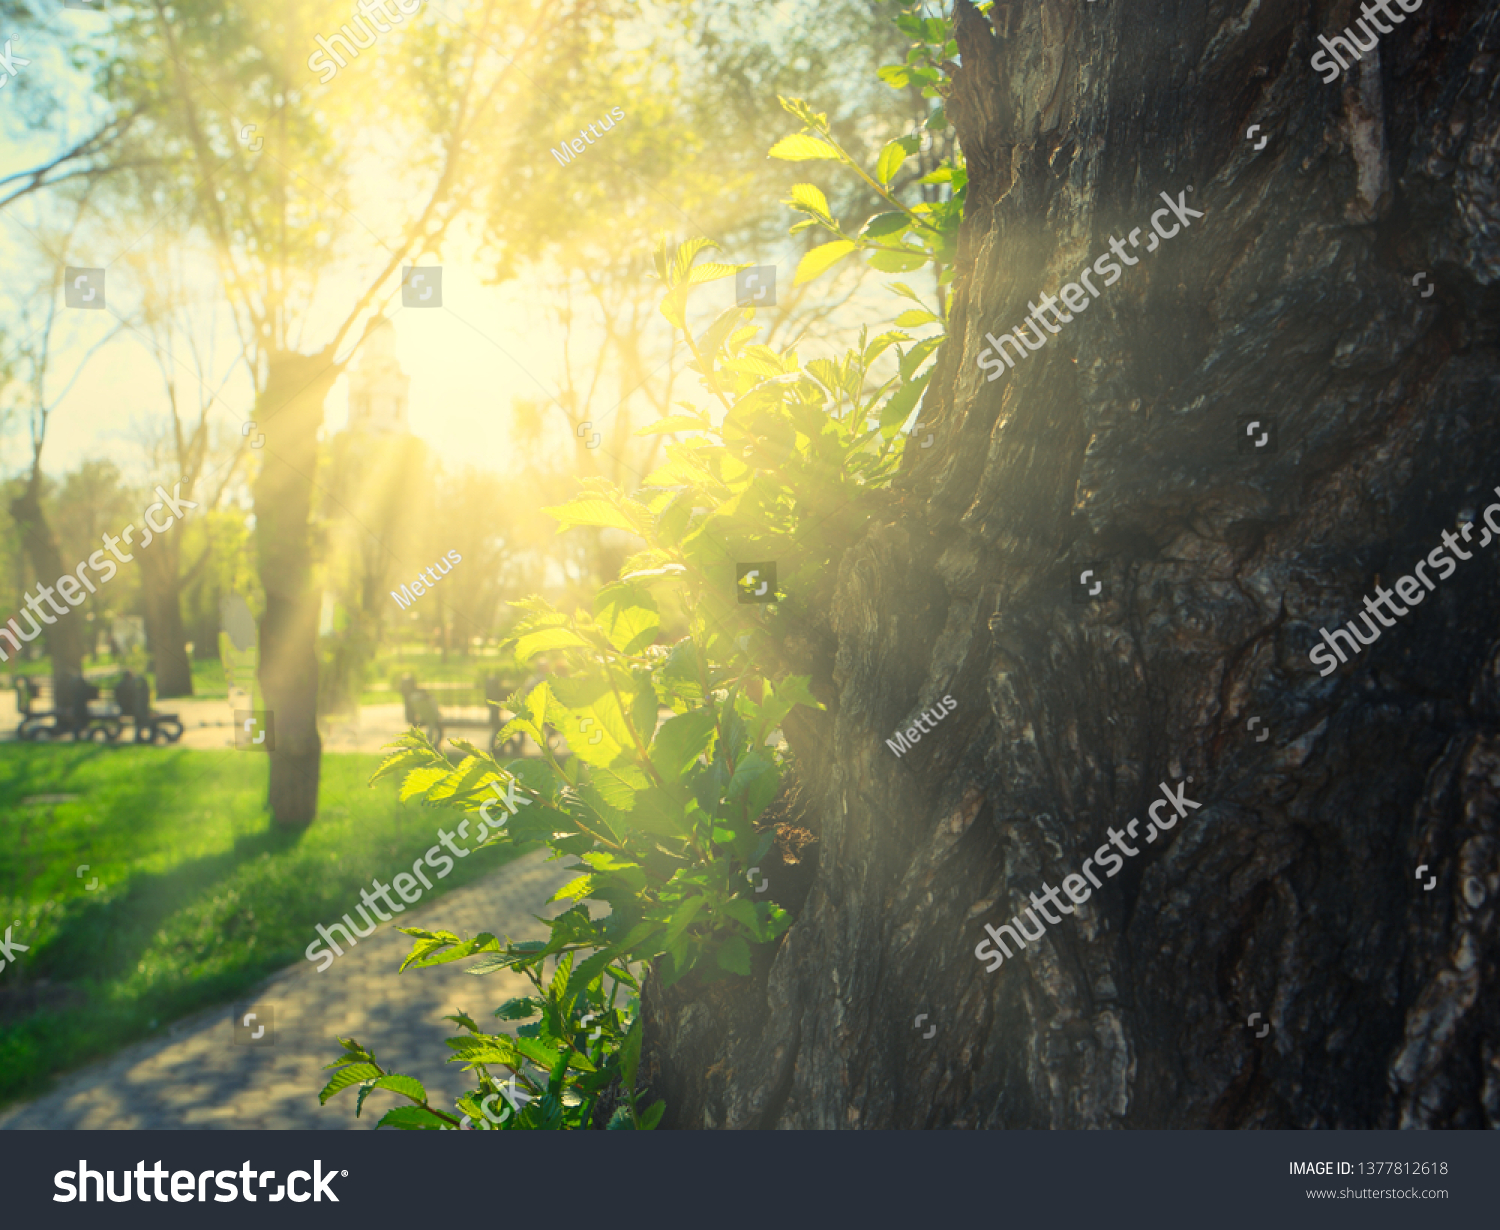 Sun shining over tree trunk in park with view at grass, copy-space